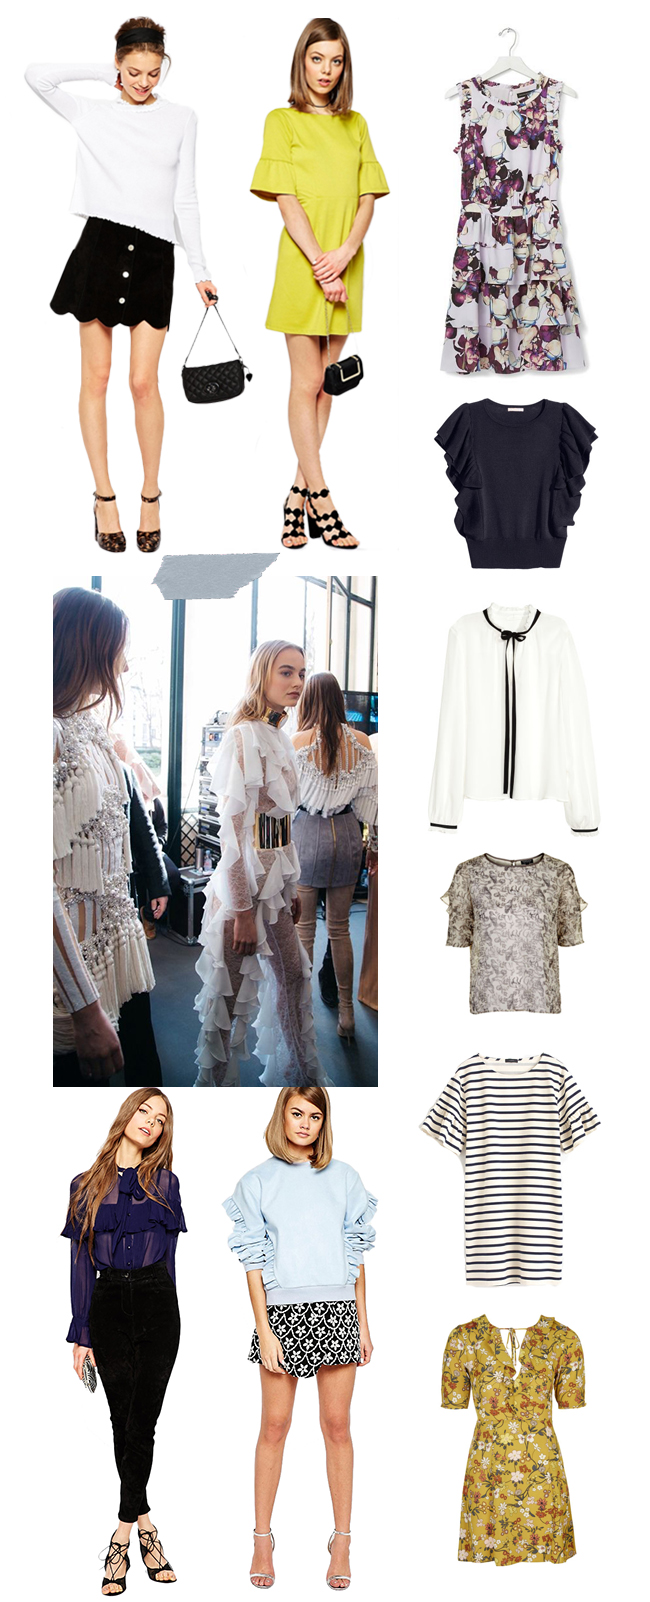 Ruffles Spring 2016 | How She'd Wear It with Style and Cheek